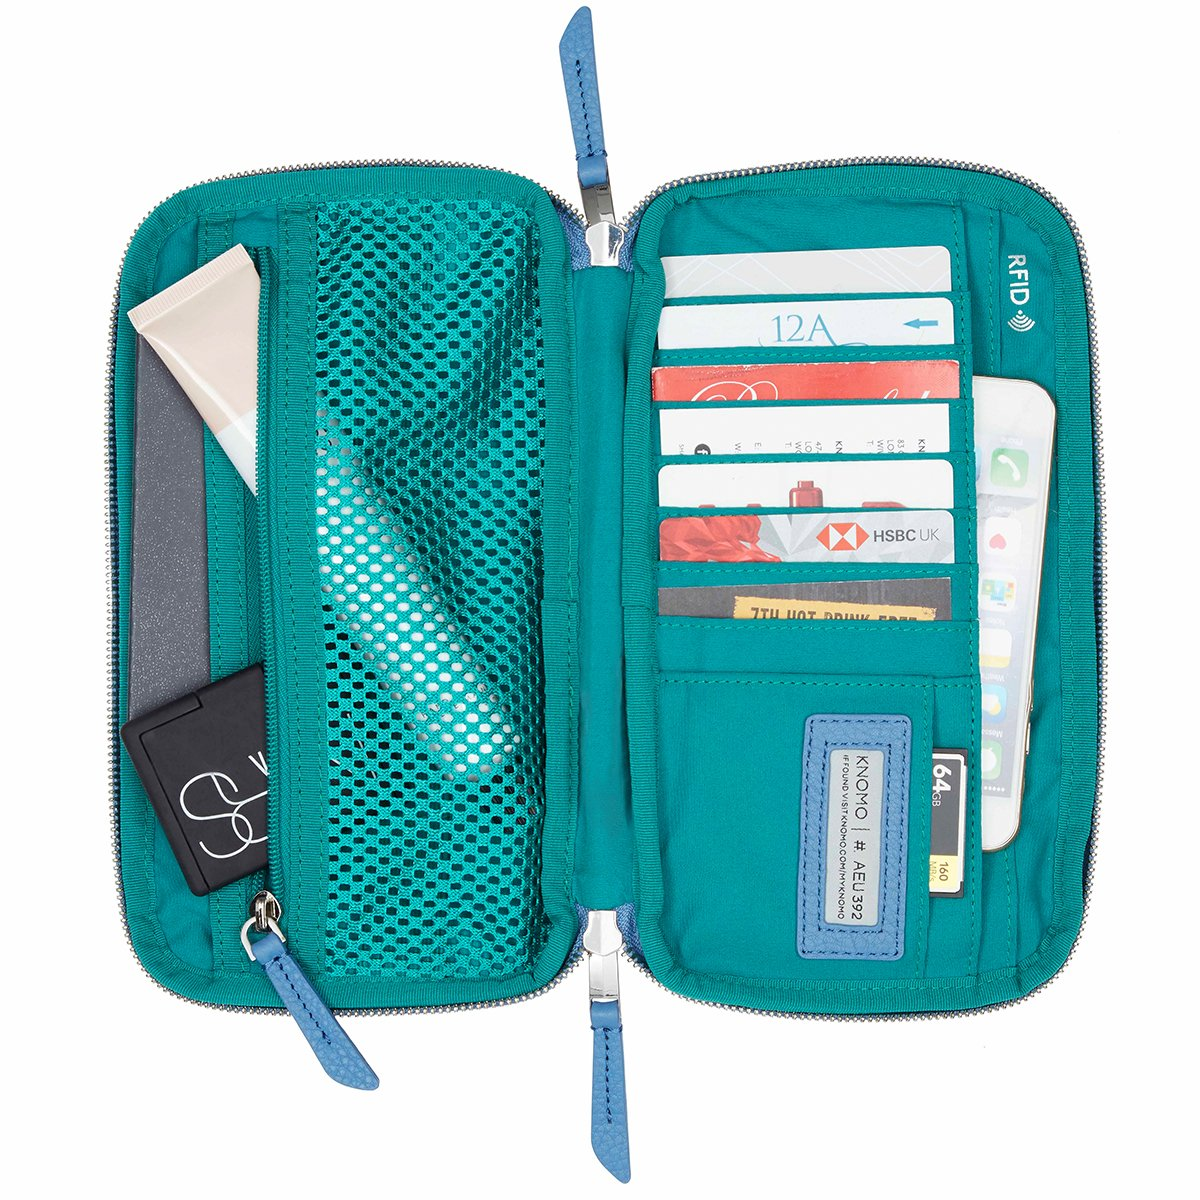 Knomad Travel Wallet Knomad Travel Wallet -  10.5"